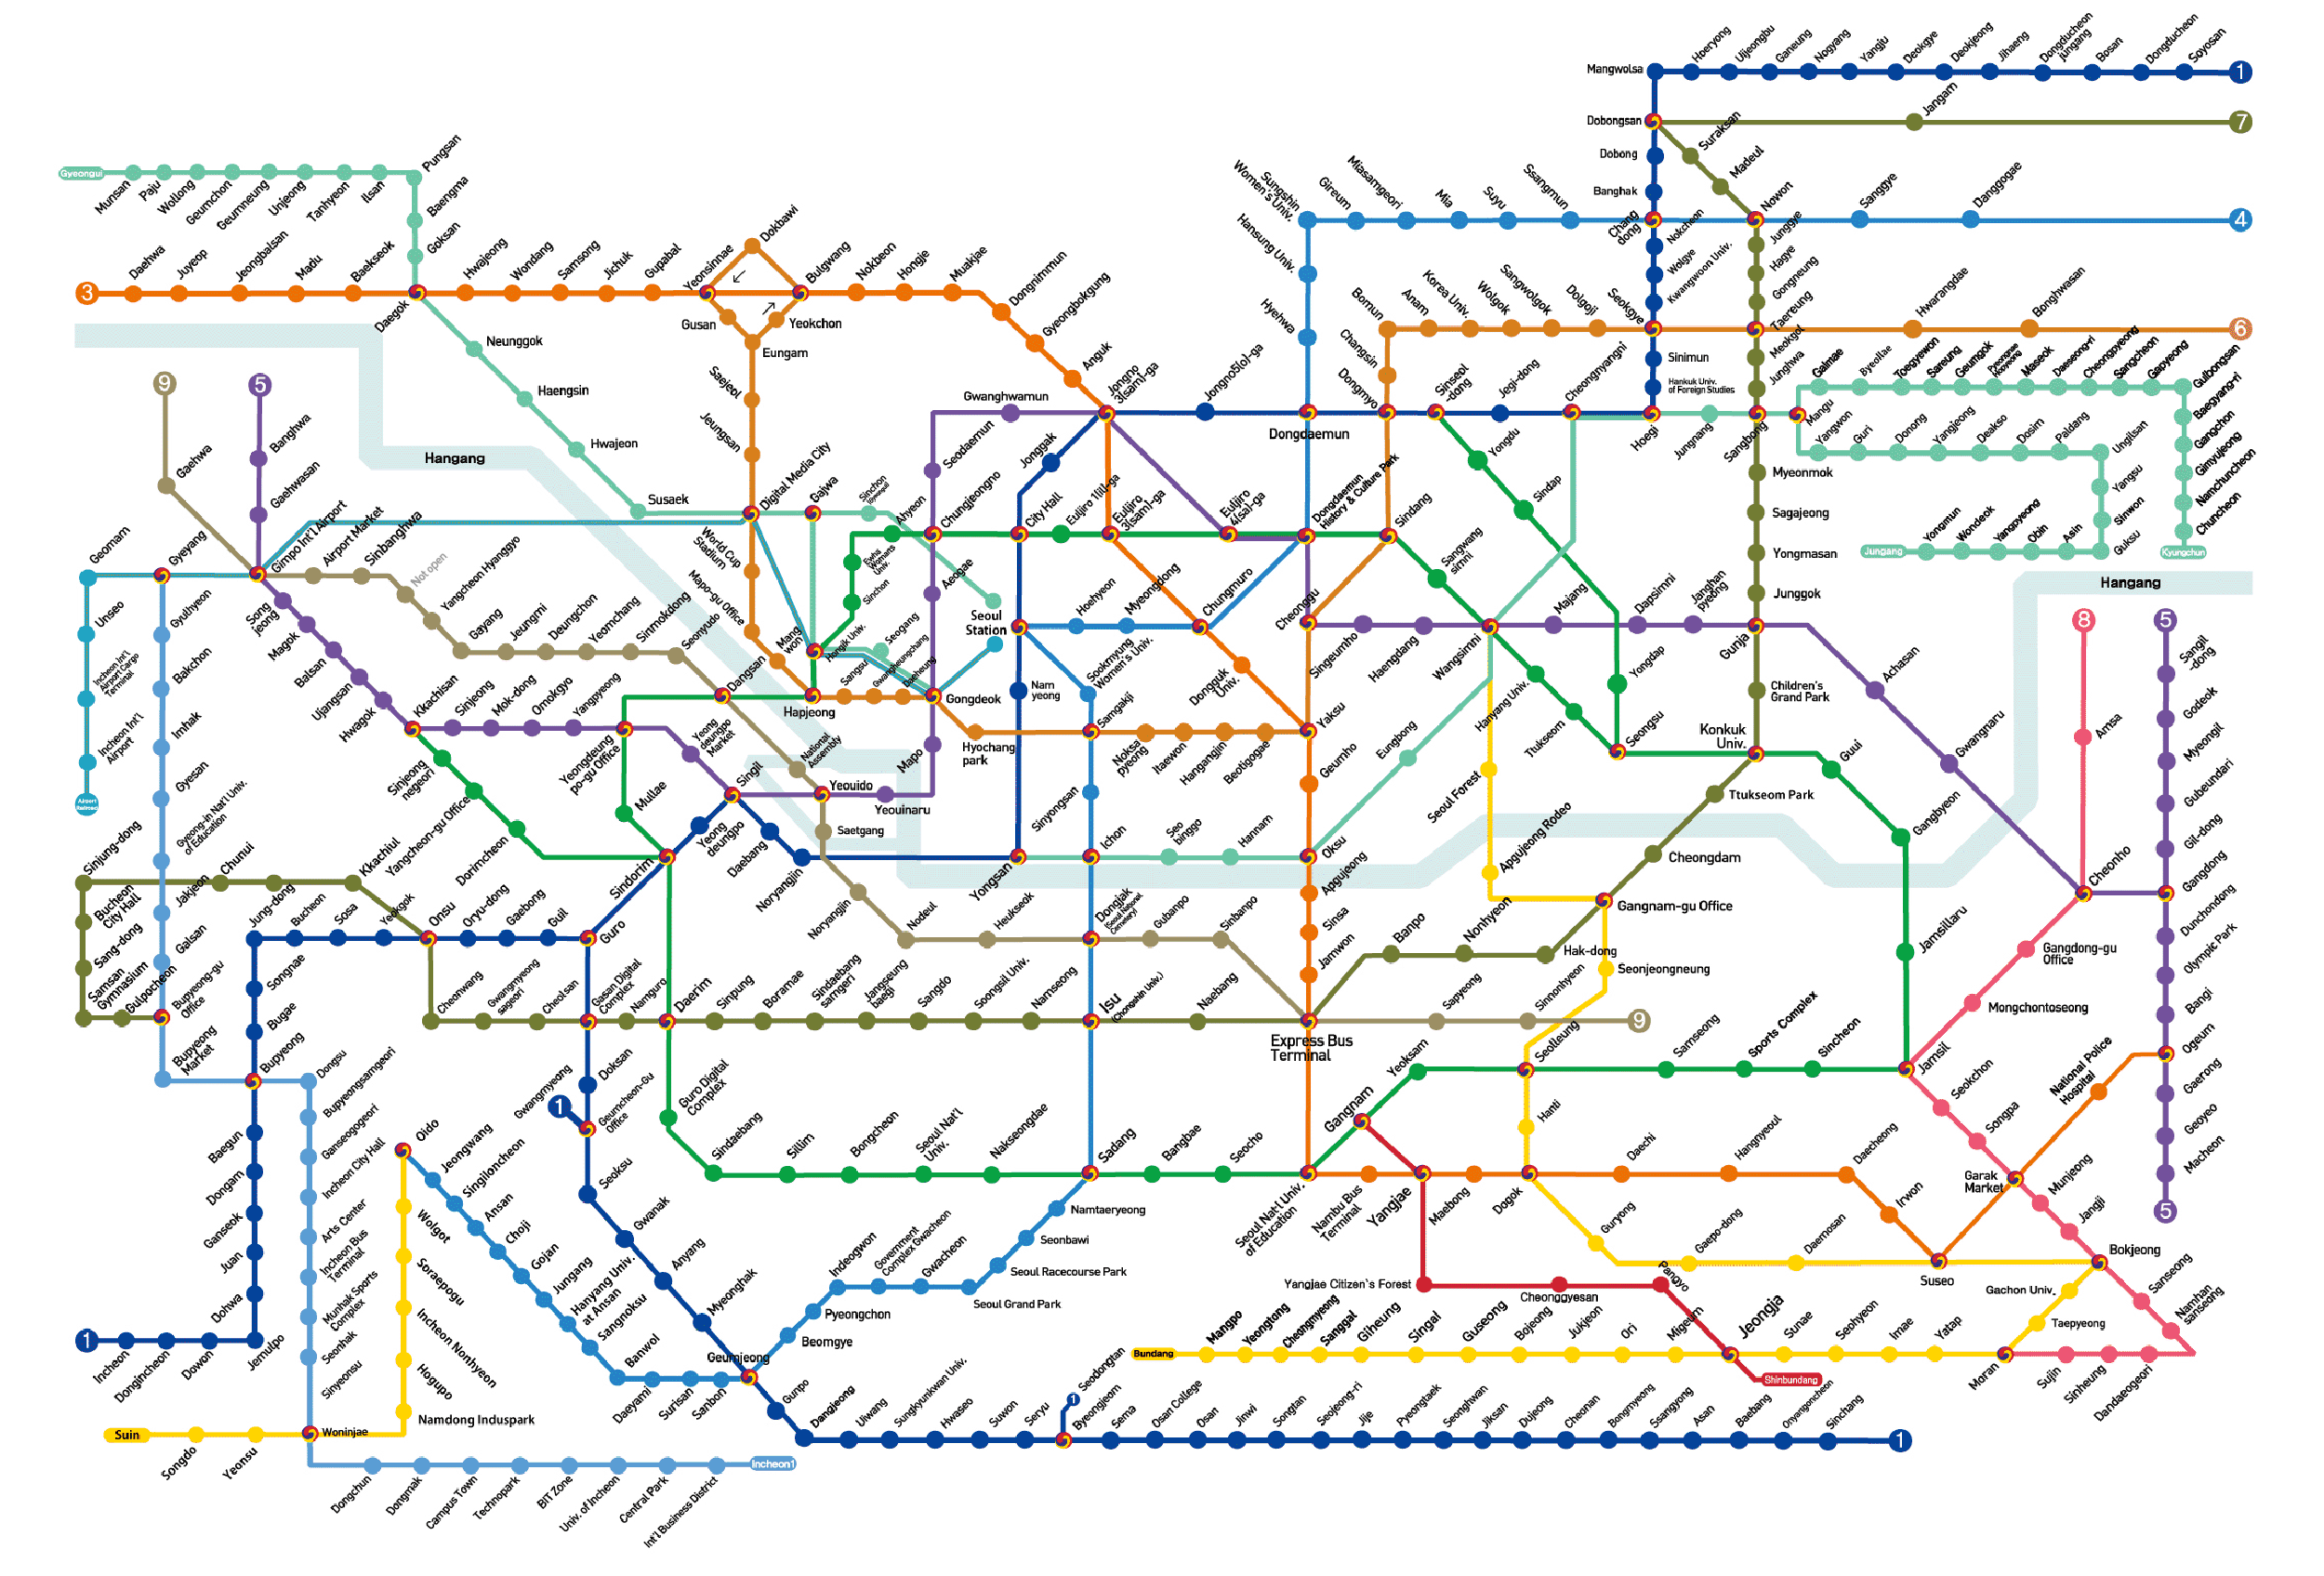 Korea Subway Station Map